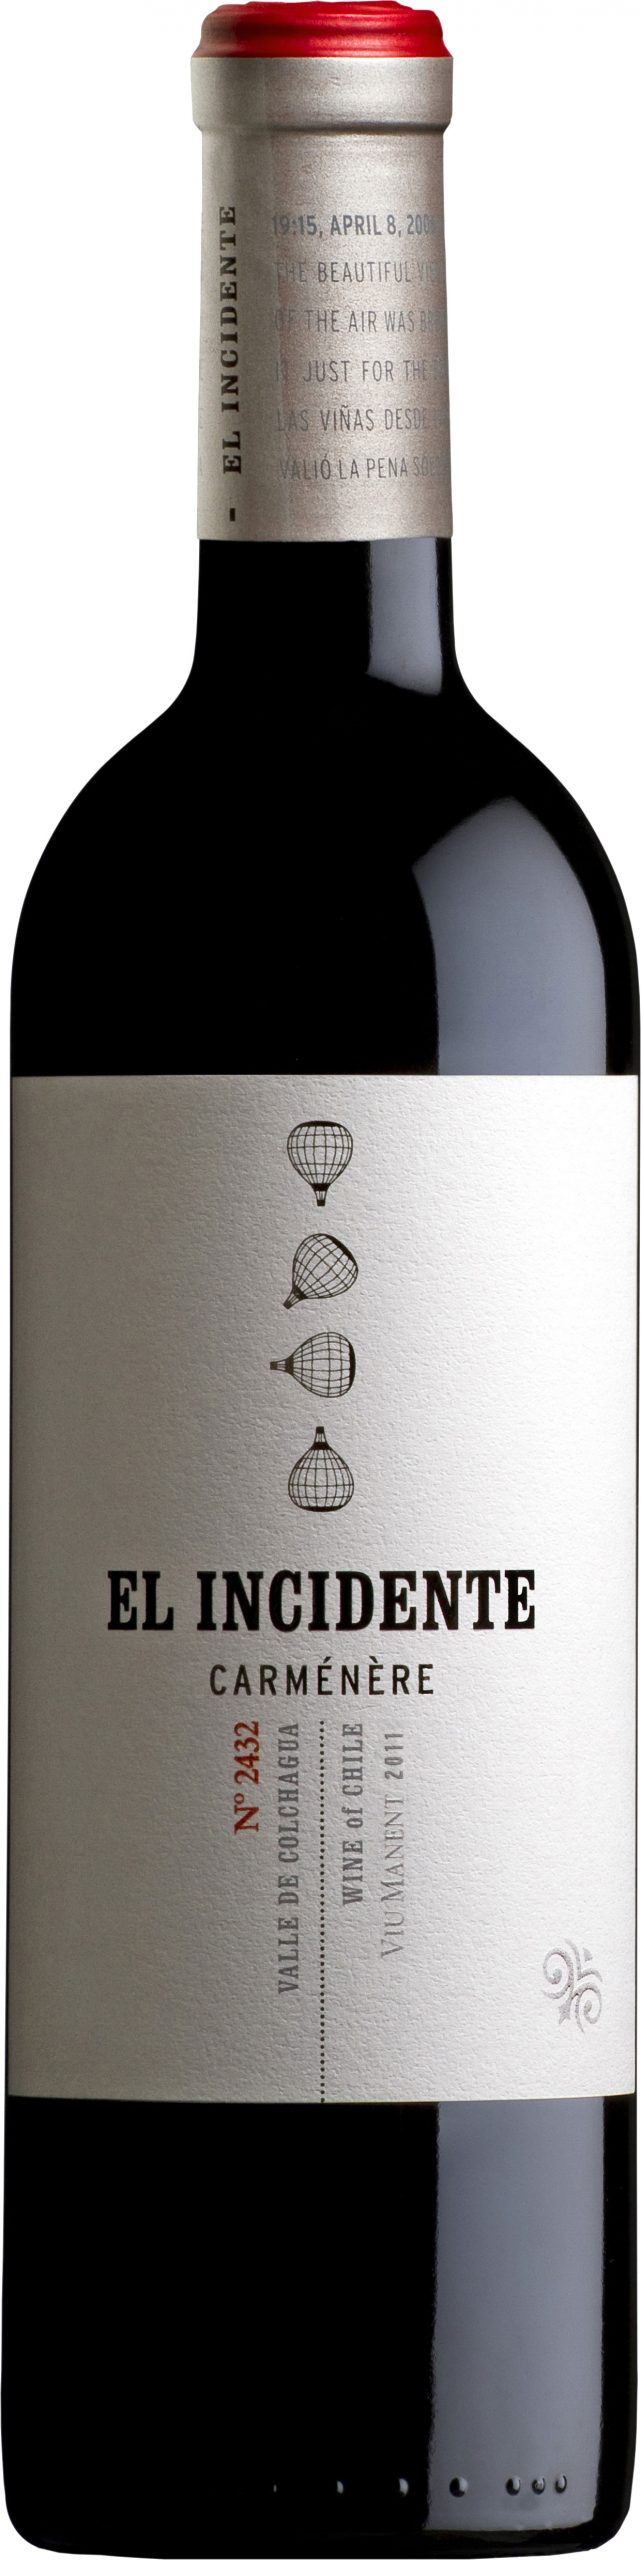 Viu Manent - El Incidente 2011 6x 75cl Bottles